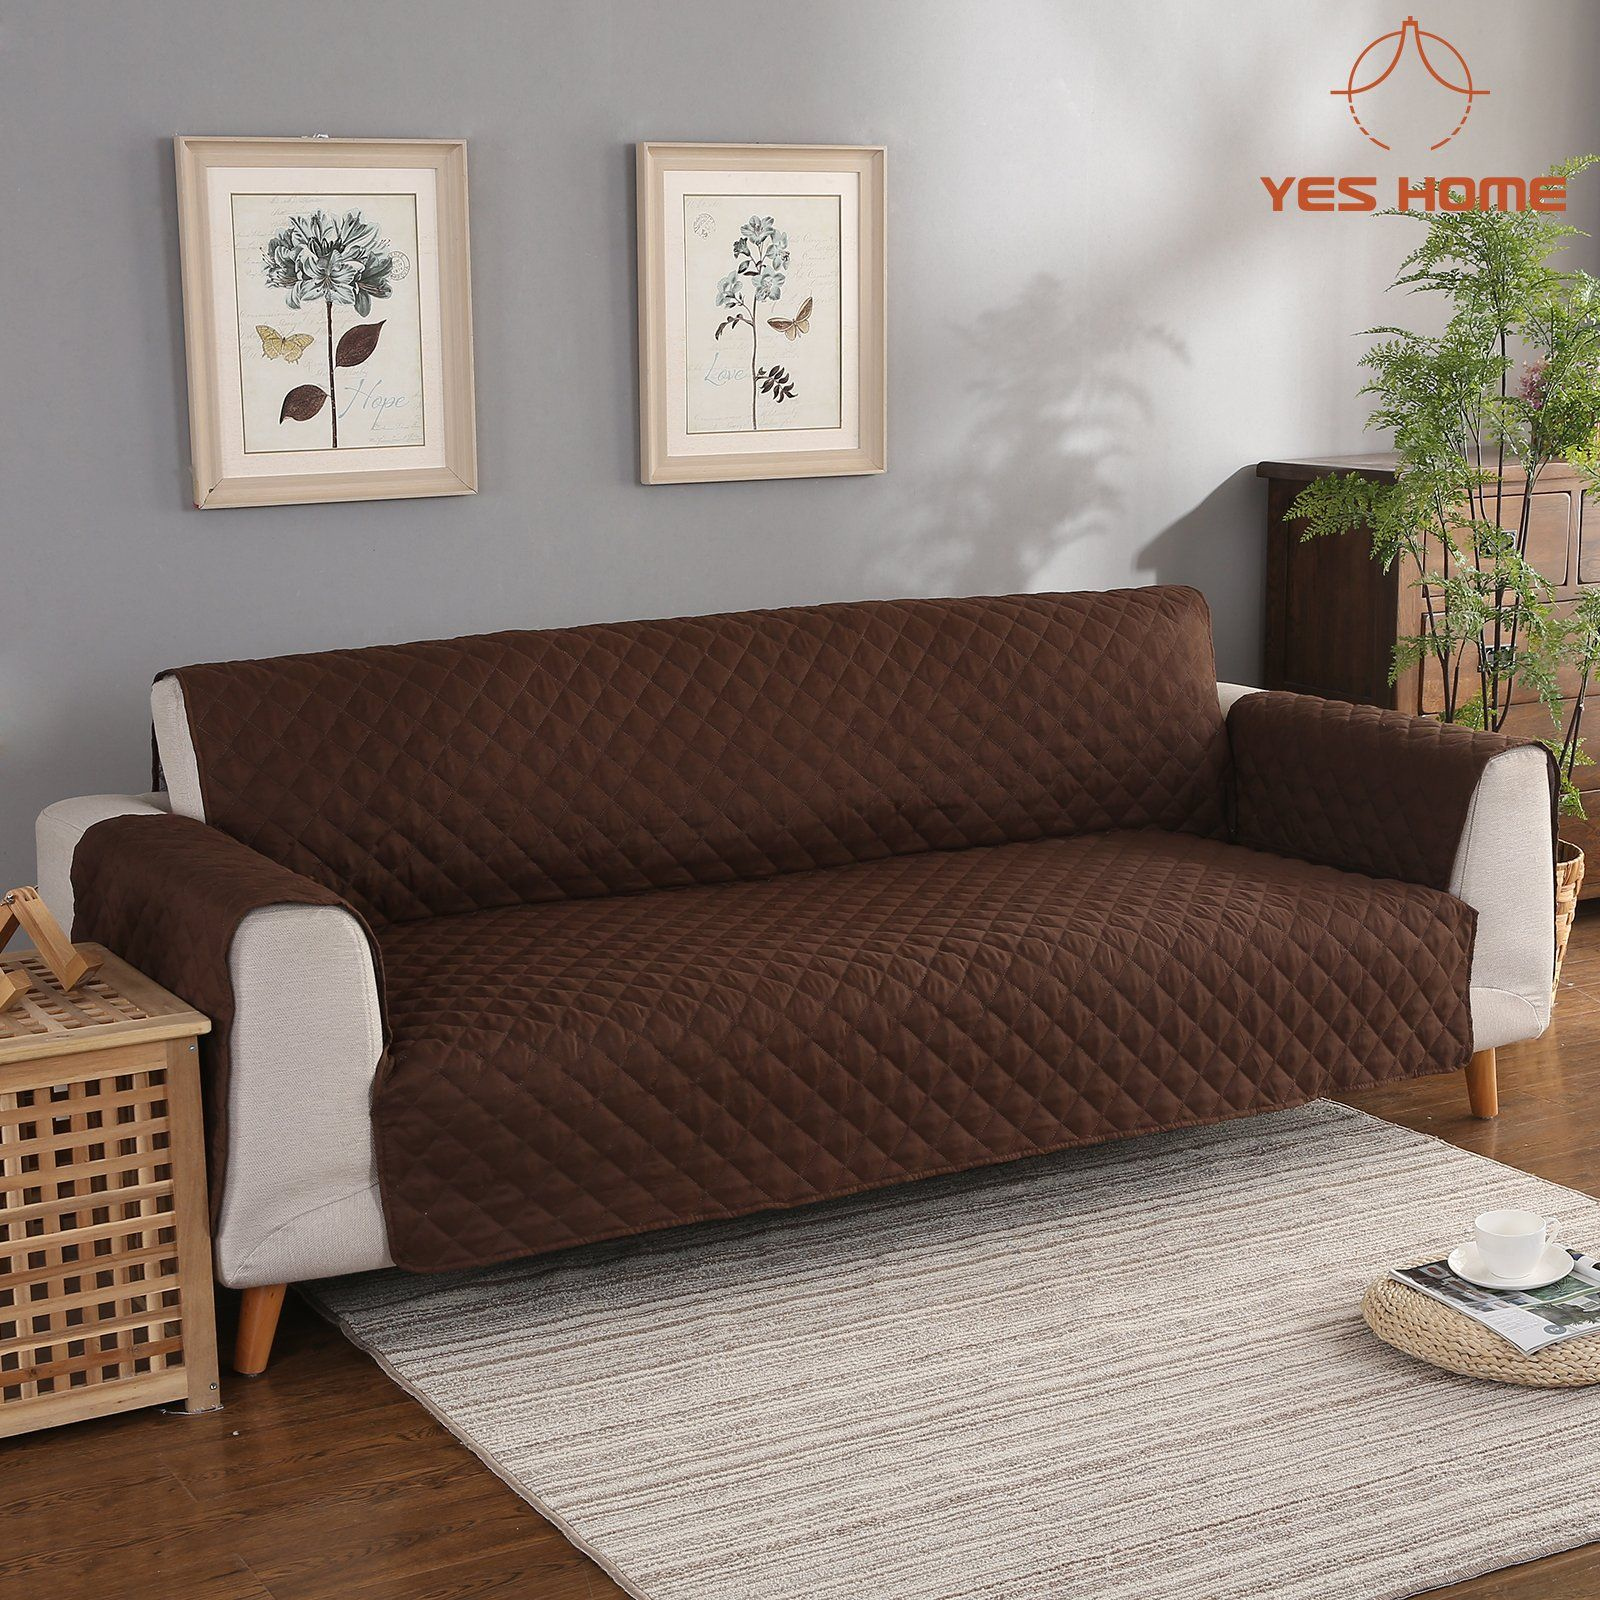 Yeshome Sofa Cover Slipcoversquilted Upgrade Antislip Couch